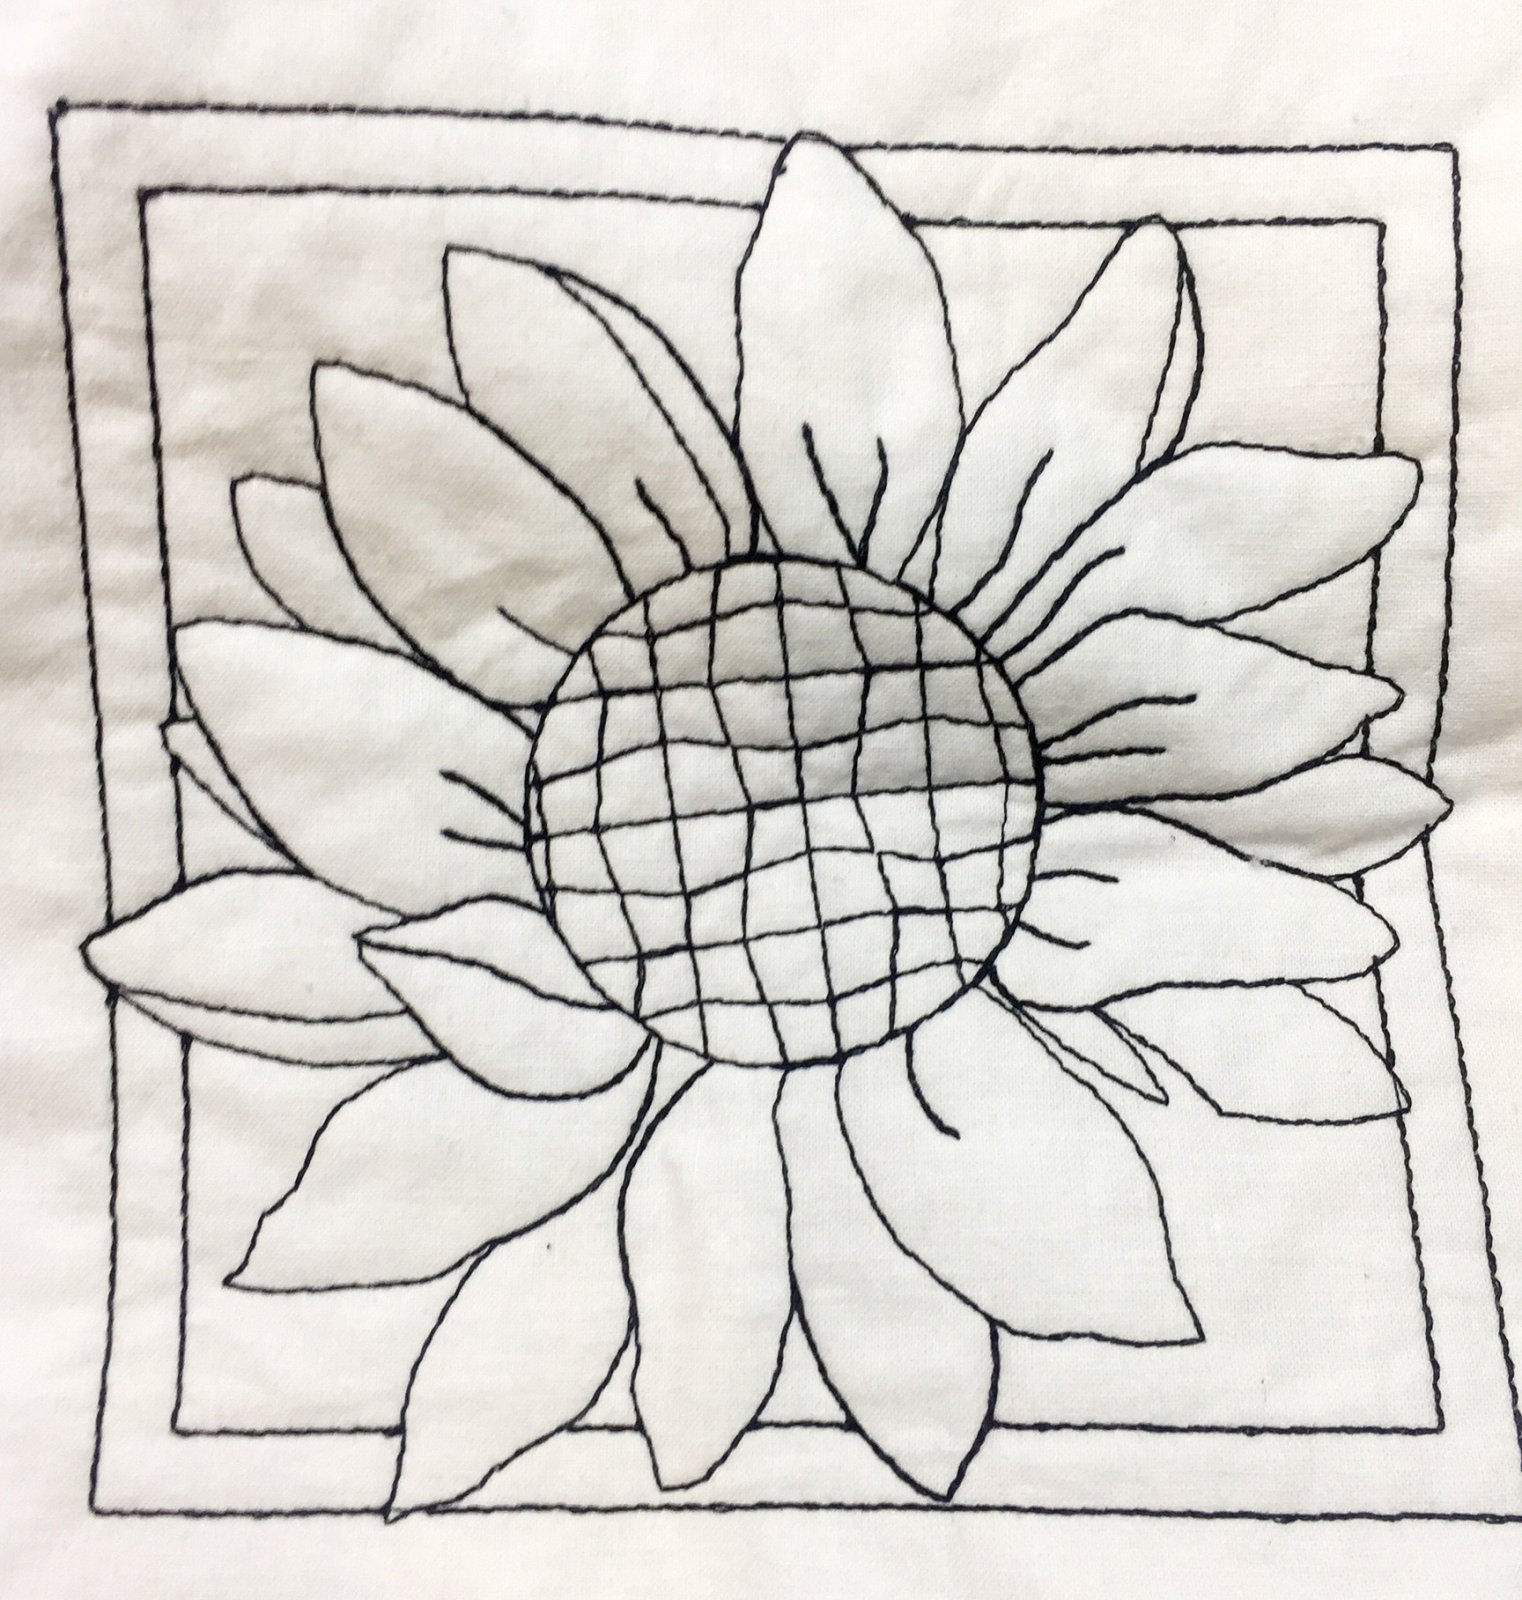 Pre-Stitched Art Applique blocks for coloring- Small single Sunflower (QA-15S)